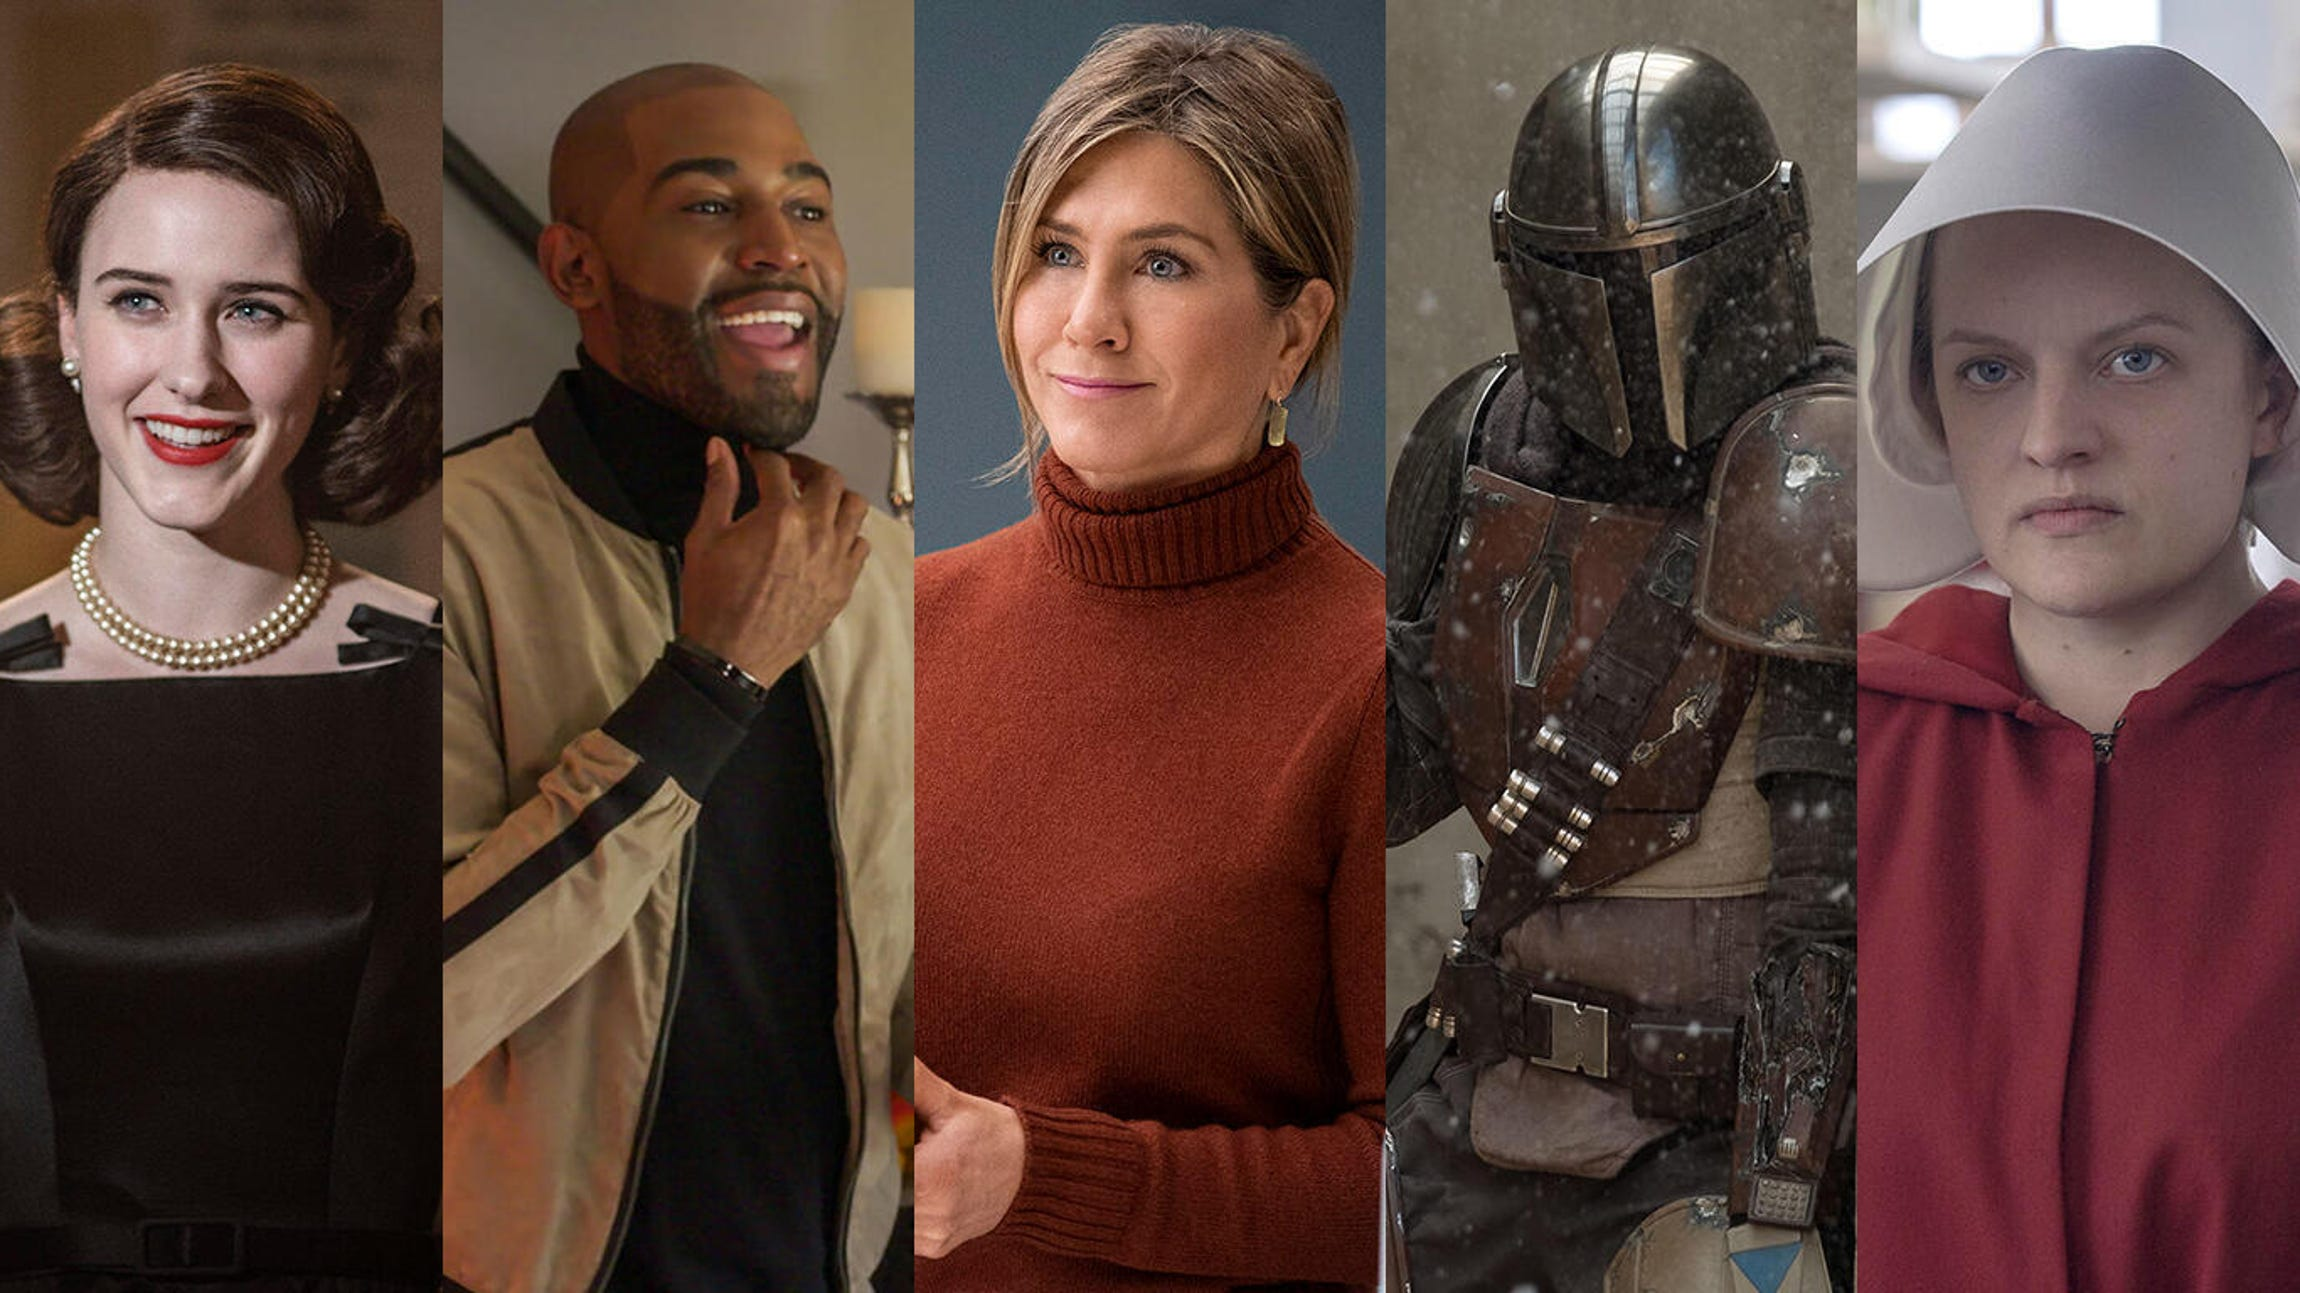 The Marvelous Mrs. Maisel, Queer Eye, The Morning Show, The Mandalorian, The Handmaid's Tale